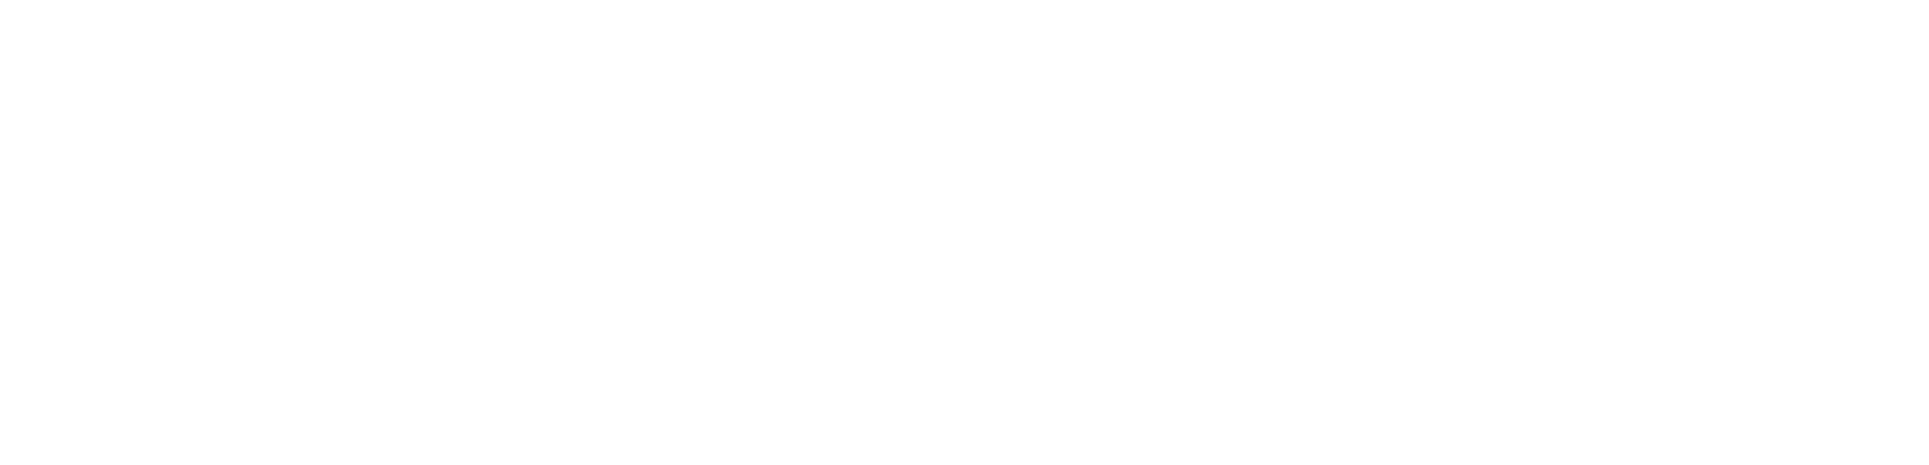 Number +36,000 composed by dots